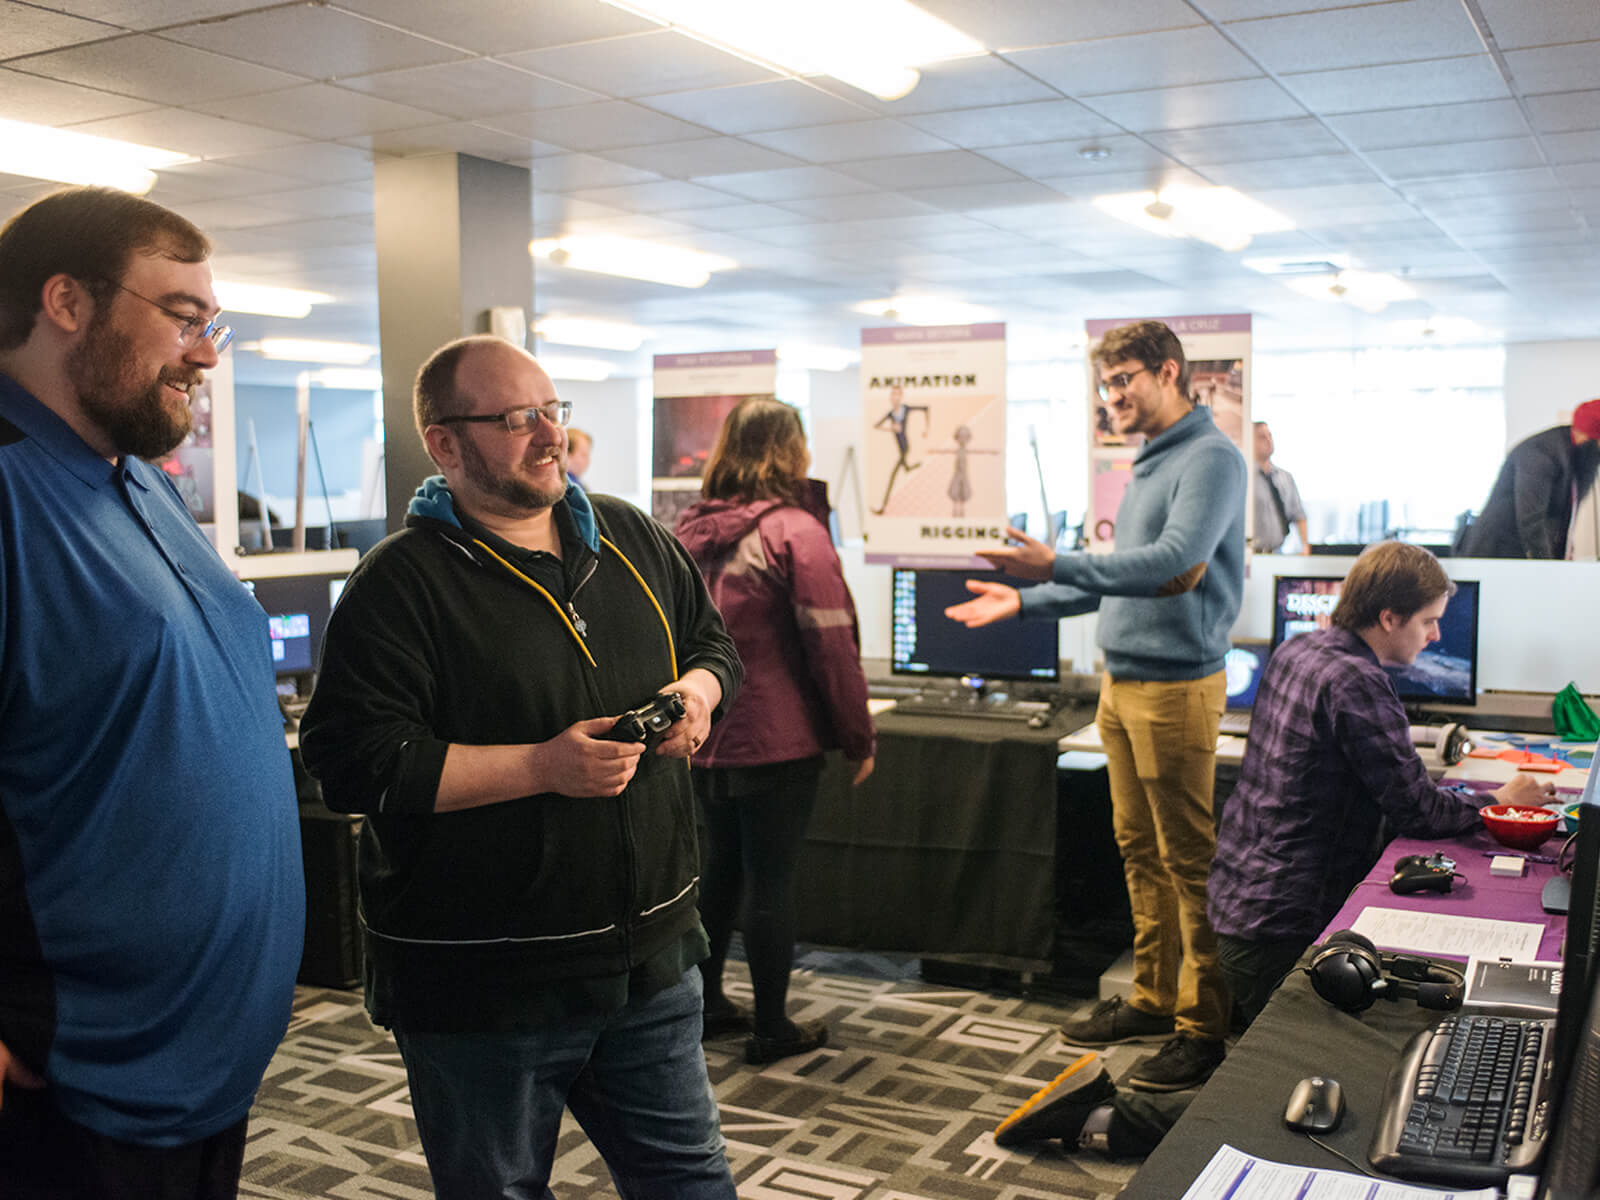 Two employers playing a student game at the 2018 DigiPen Career Fair